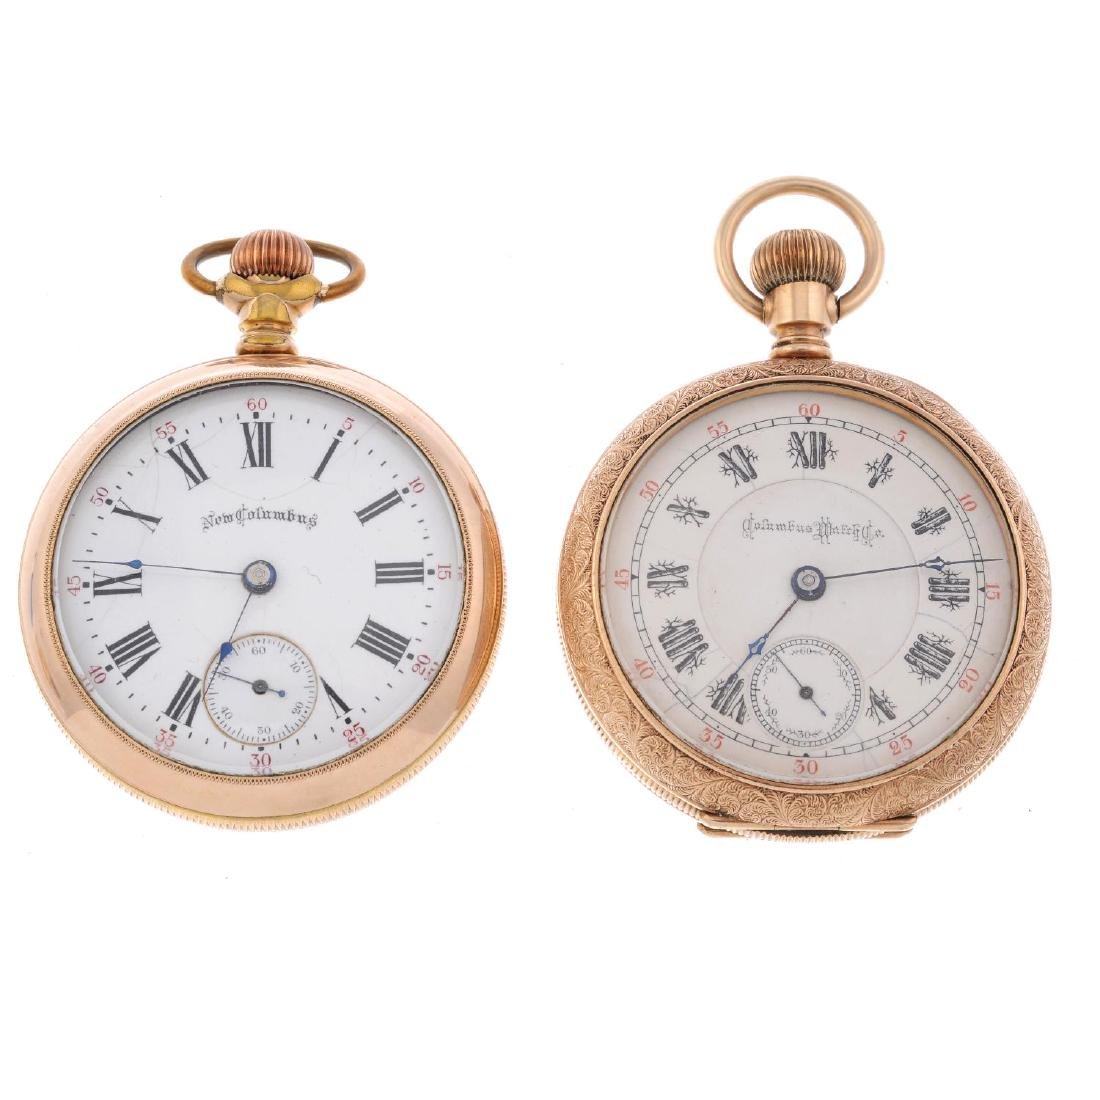 A group of four assorted pocket watches, to include an